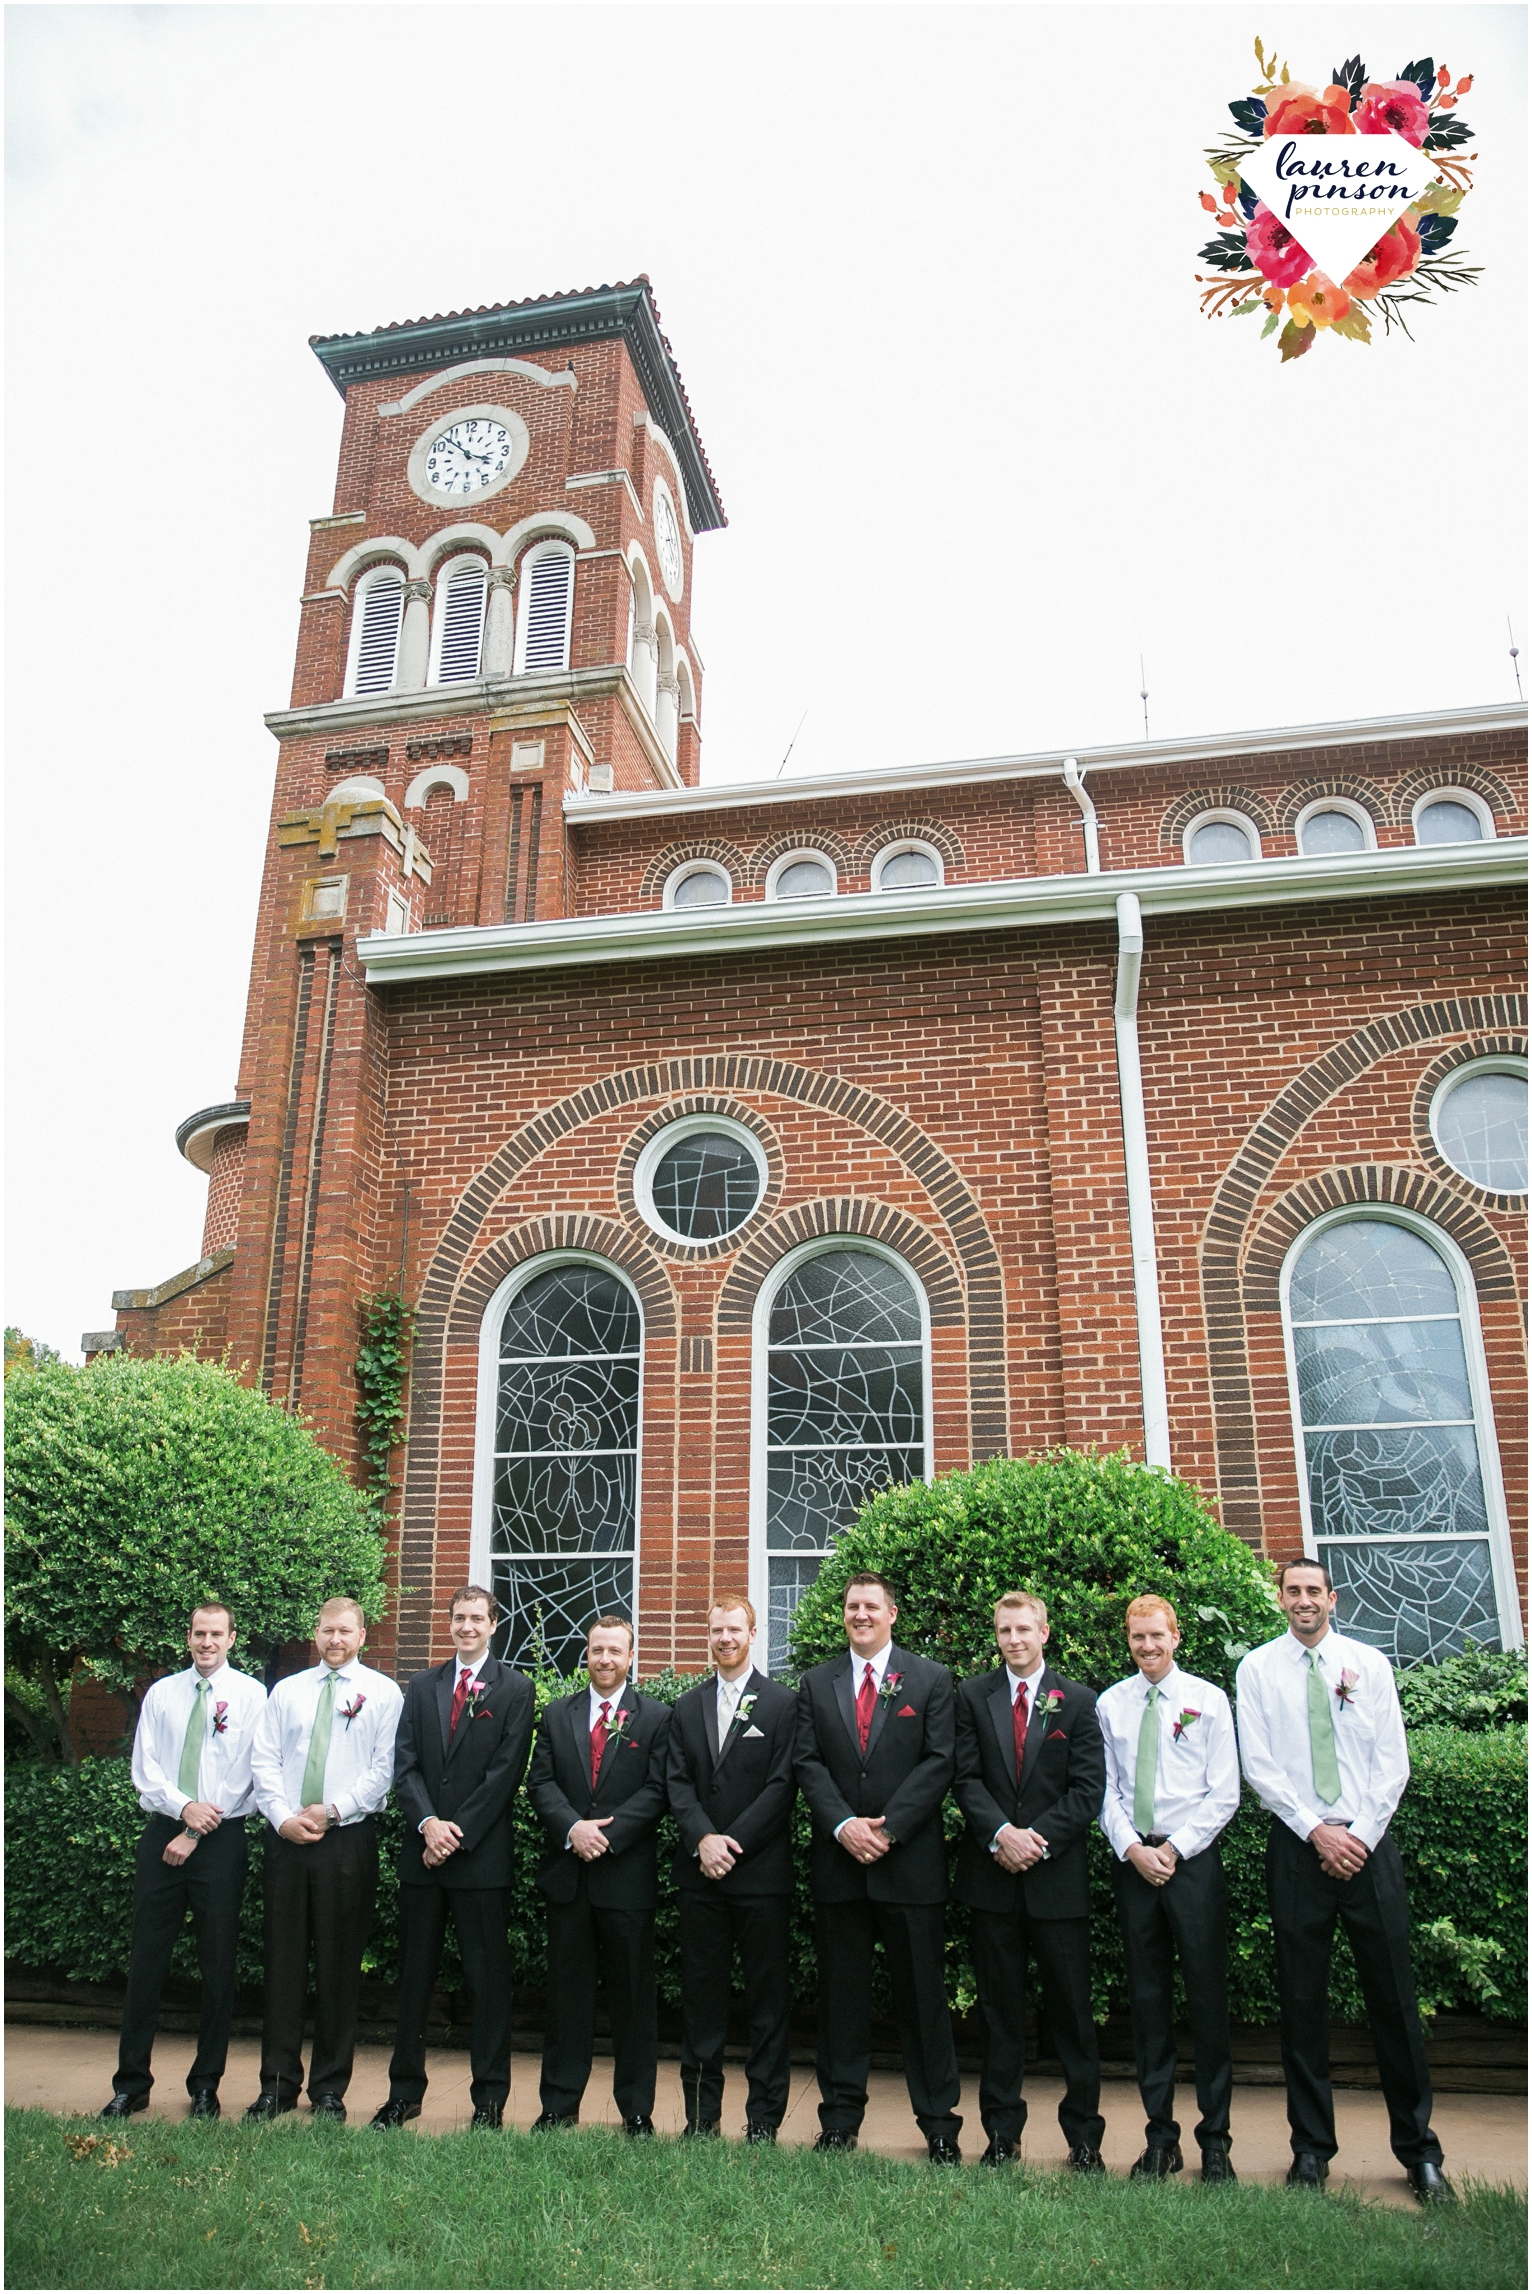 wichita-falls-wedding-photographer-OUR-Lady-queen-of-peace-catholic-wedding-the-forum-photography_0921.jpg